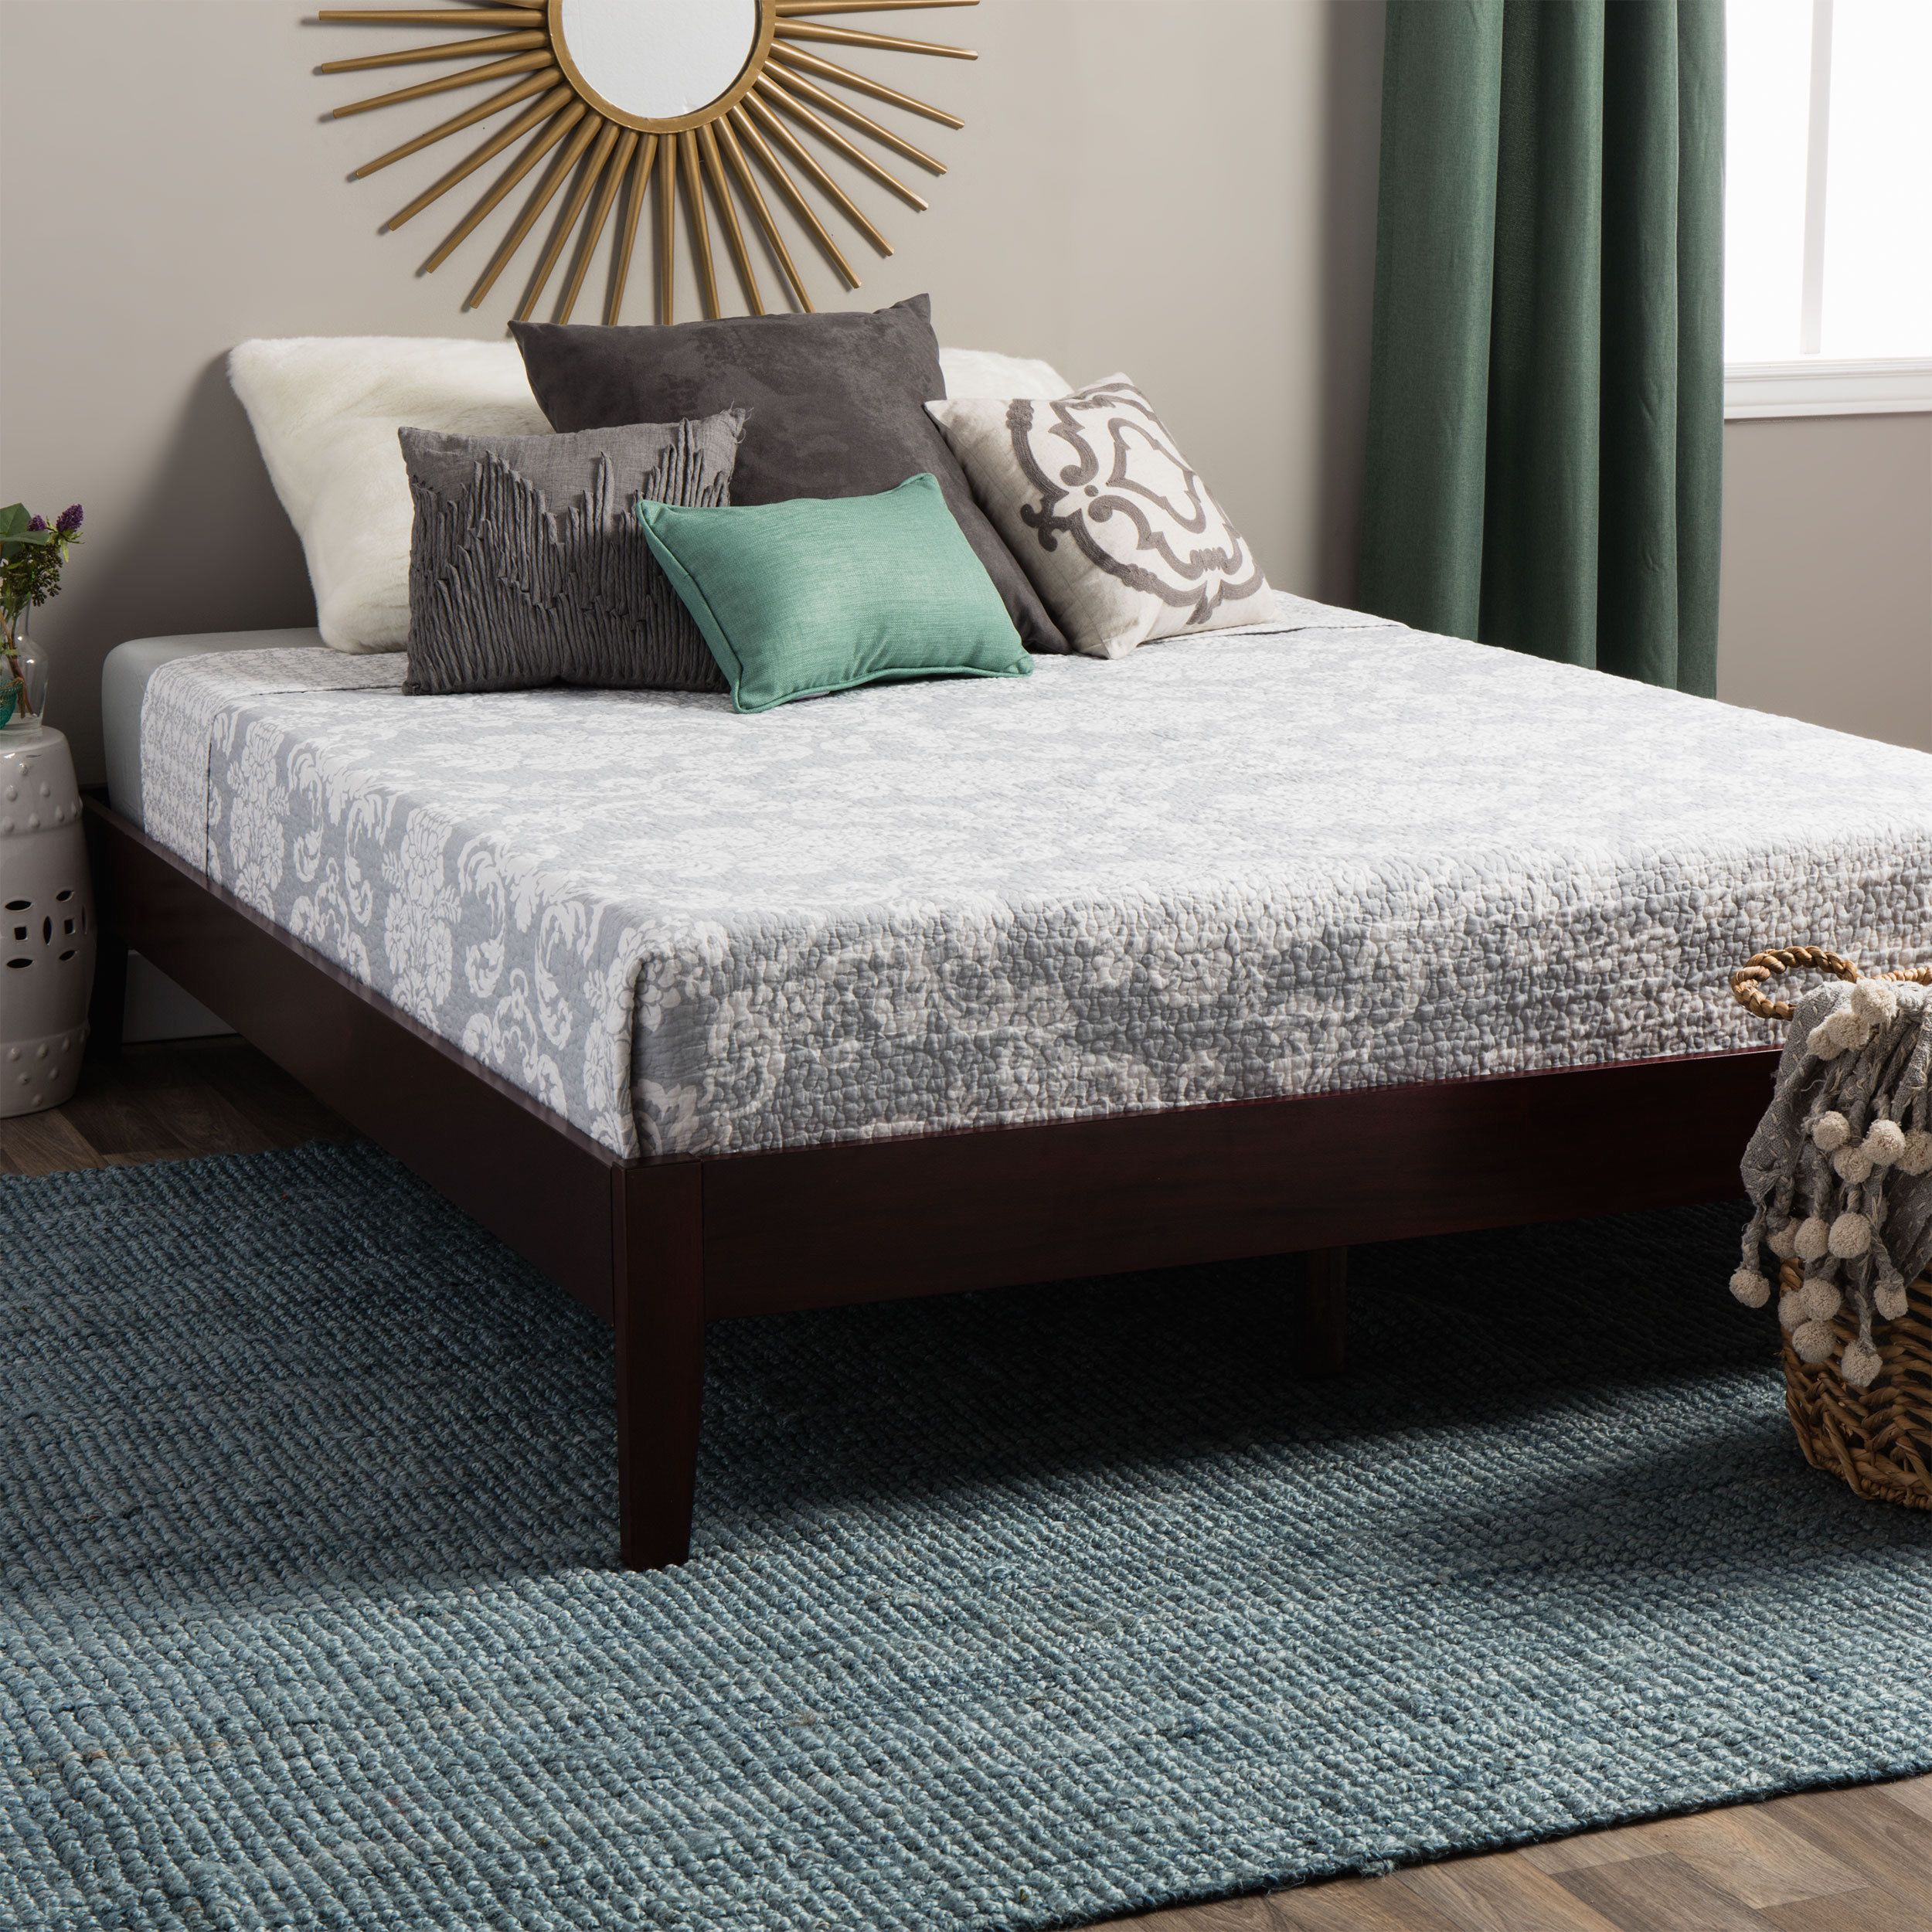 u003cliu003eSimple platform bed adds a contemporary touch